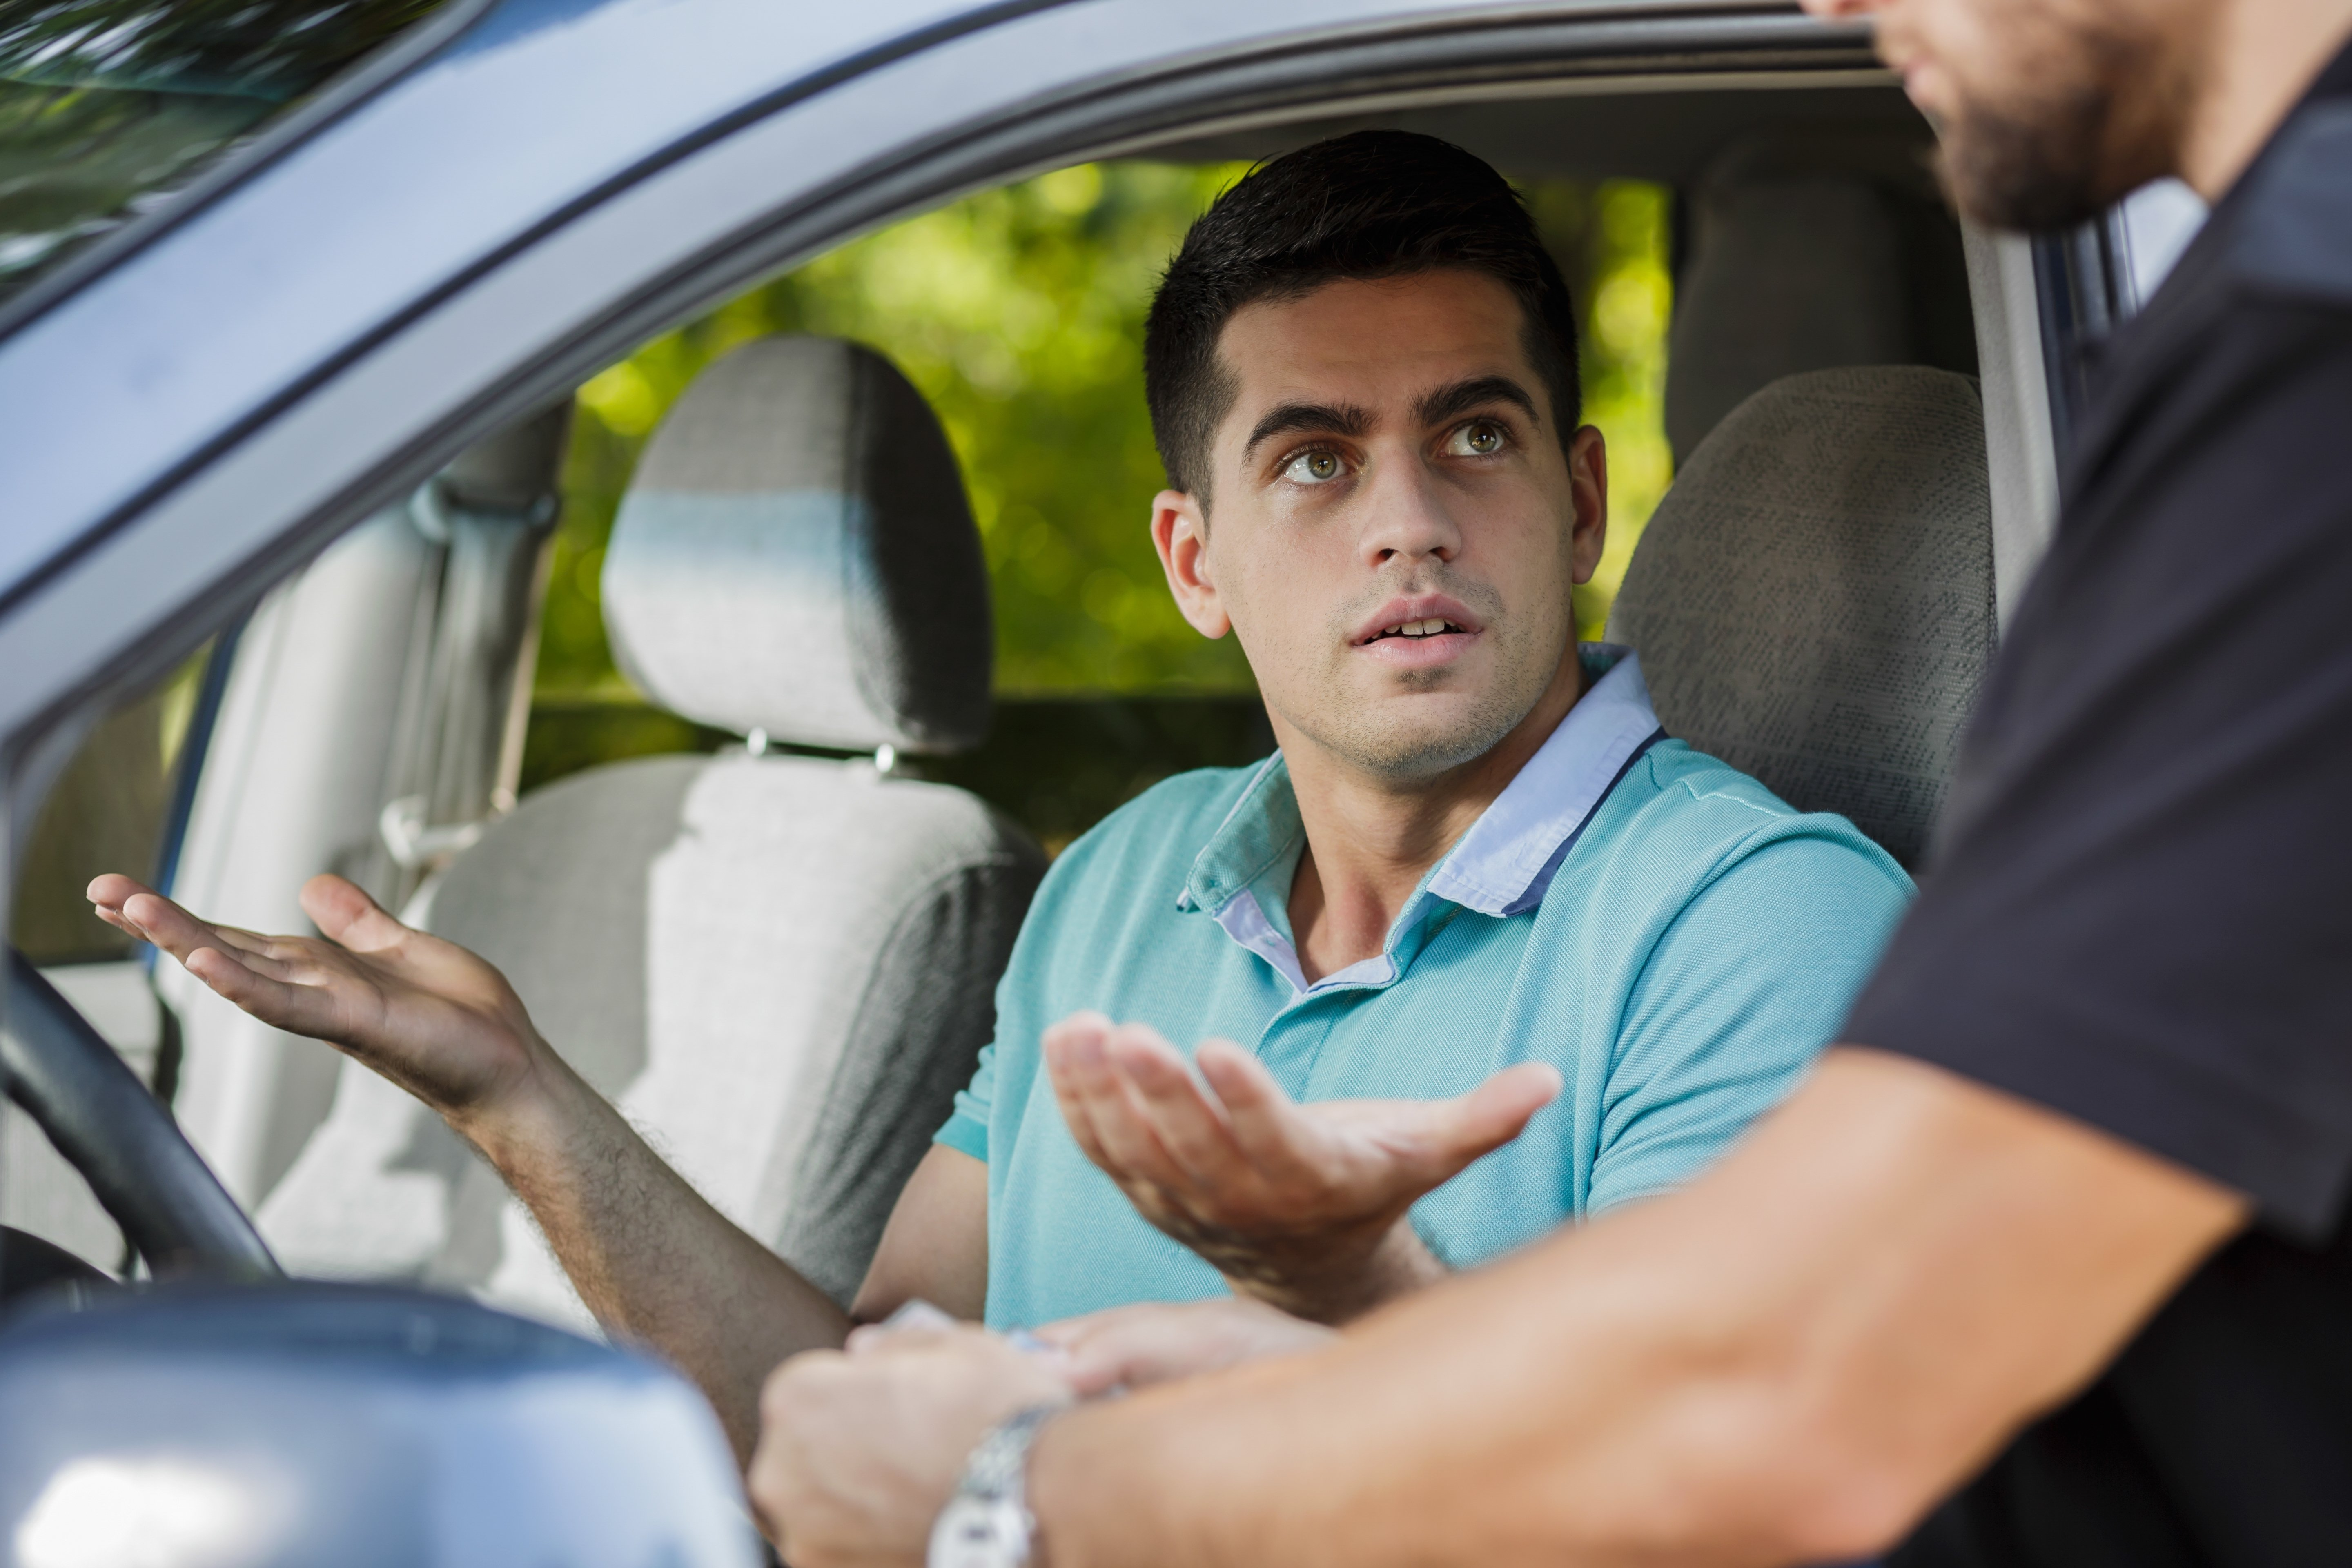 The young man wondered what he had done wrong. | Photo: Shutterstock